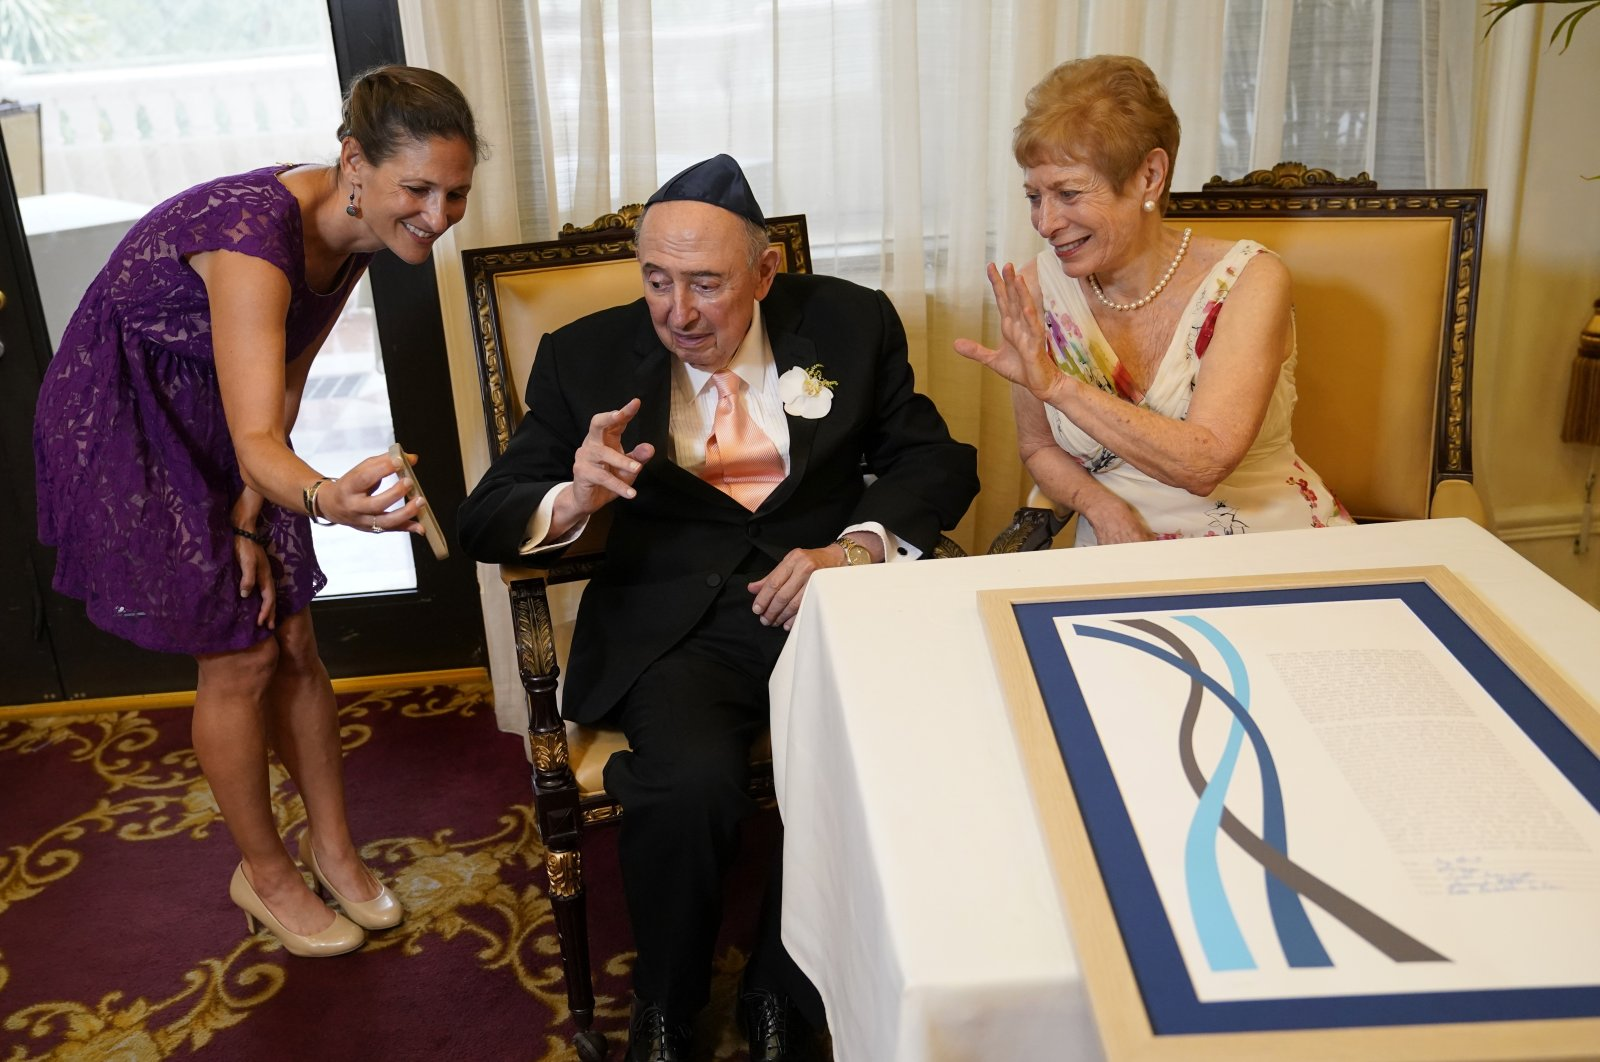 A couple waveto family members on a cell phone after signing the ketubah, a Jewish marriage contract, before their wedding ceremony at The Palace Coral Gables, a senior living residence, in Coral Gables, Florida, U.S.,June 22, 2021. (AP Photo)